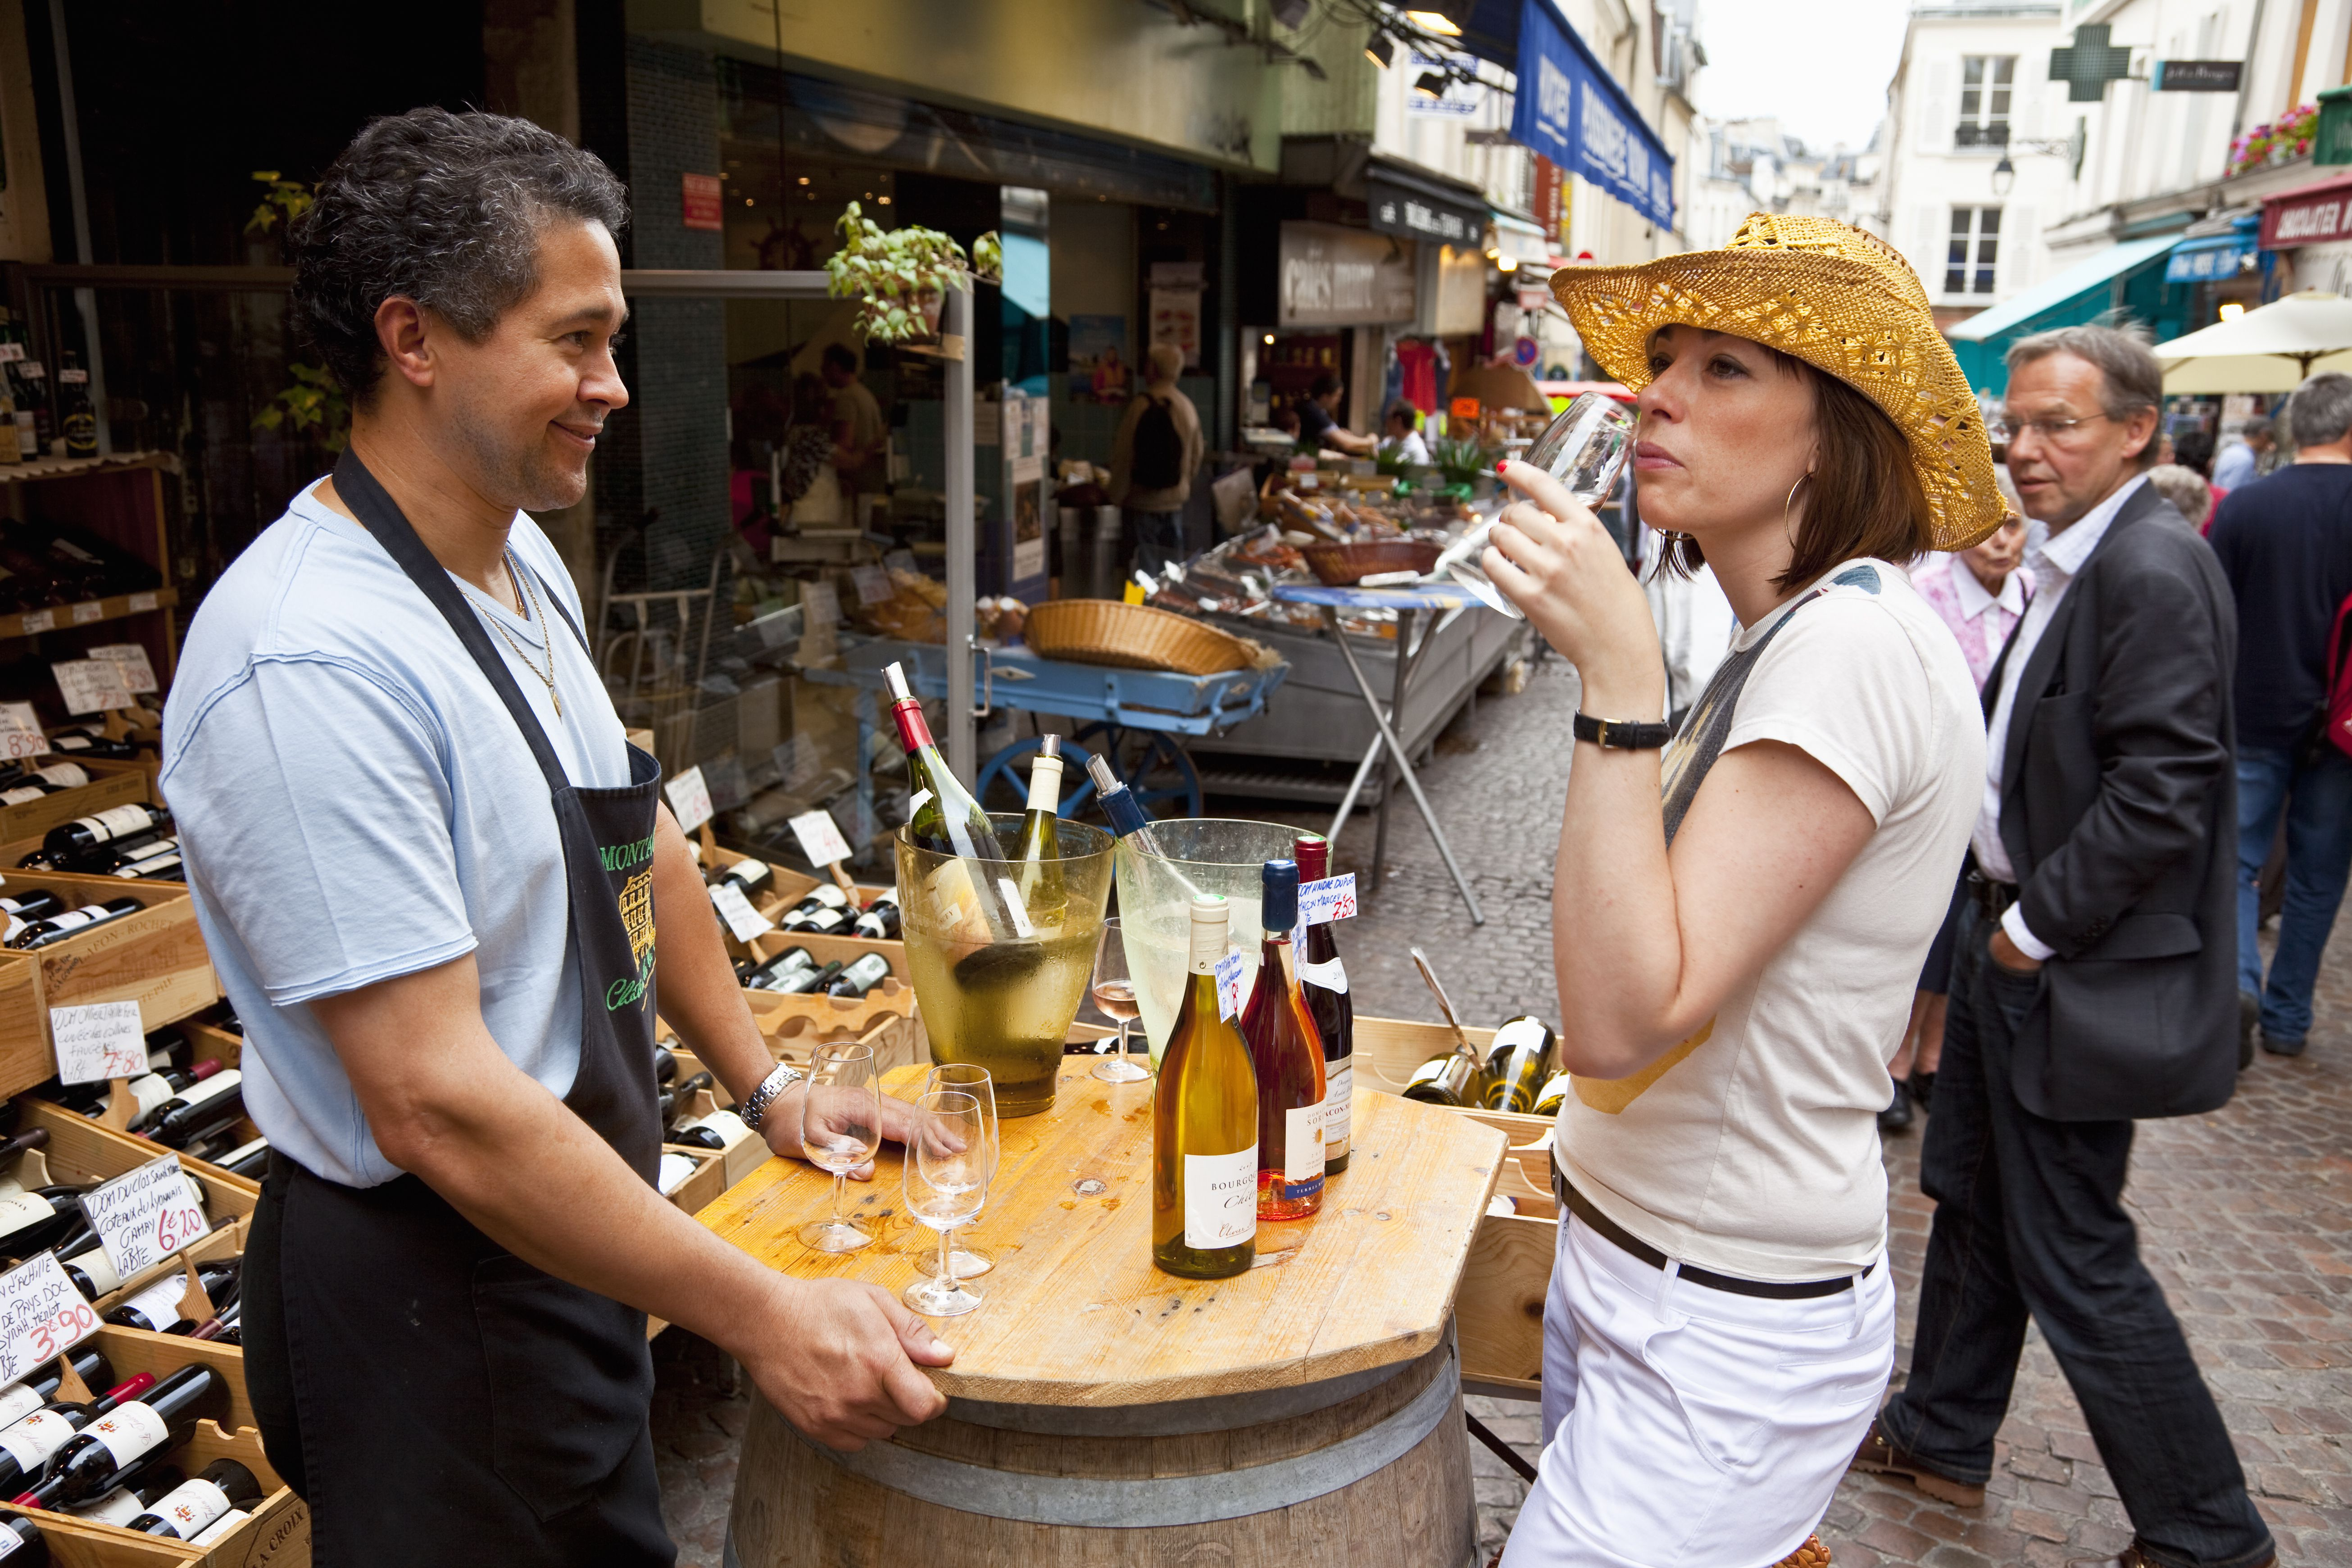 Wine tasting at an outdoor market in Paris.